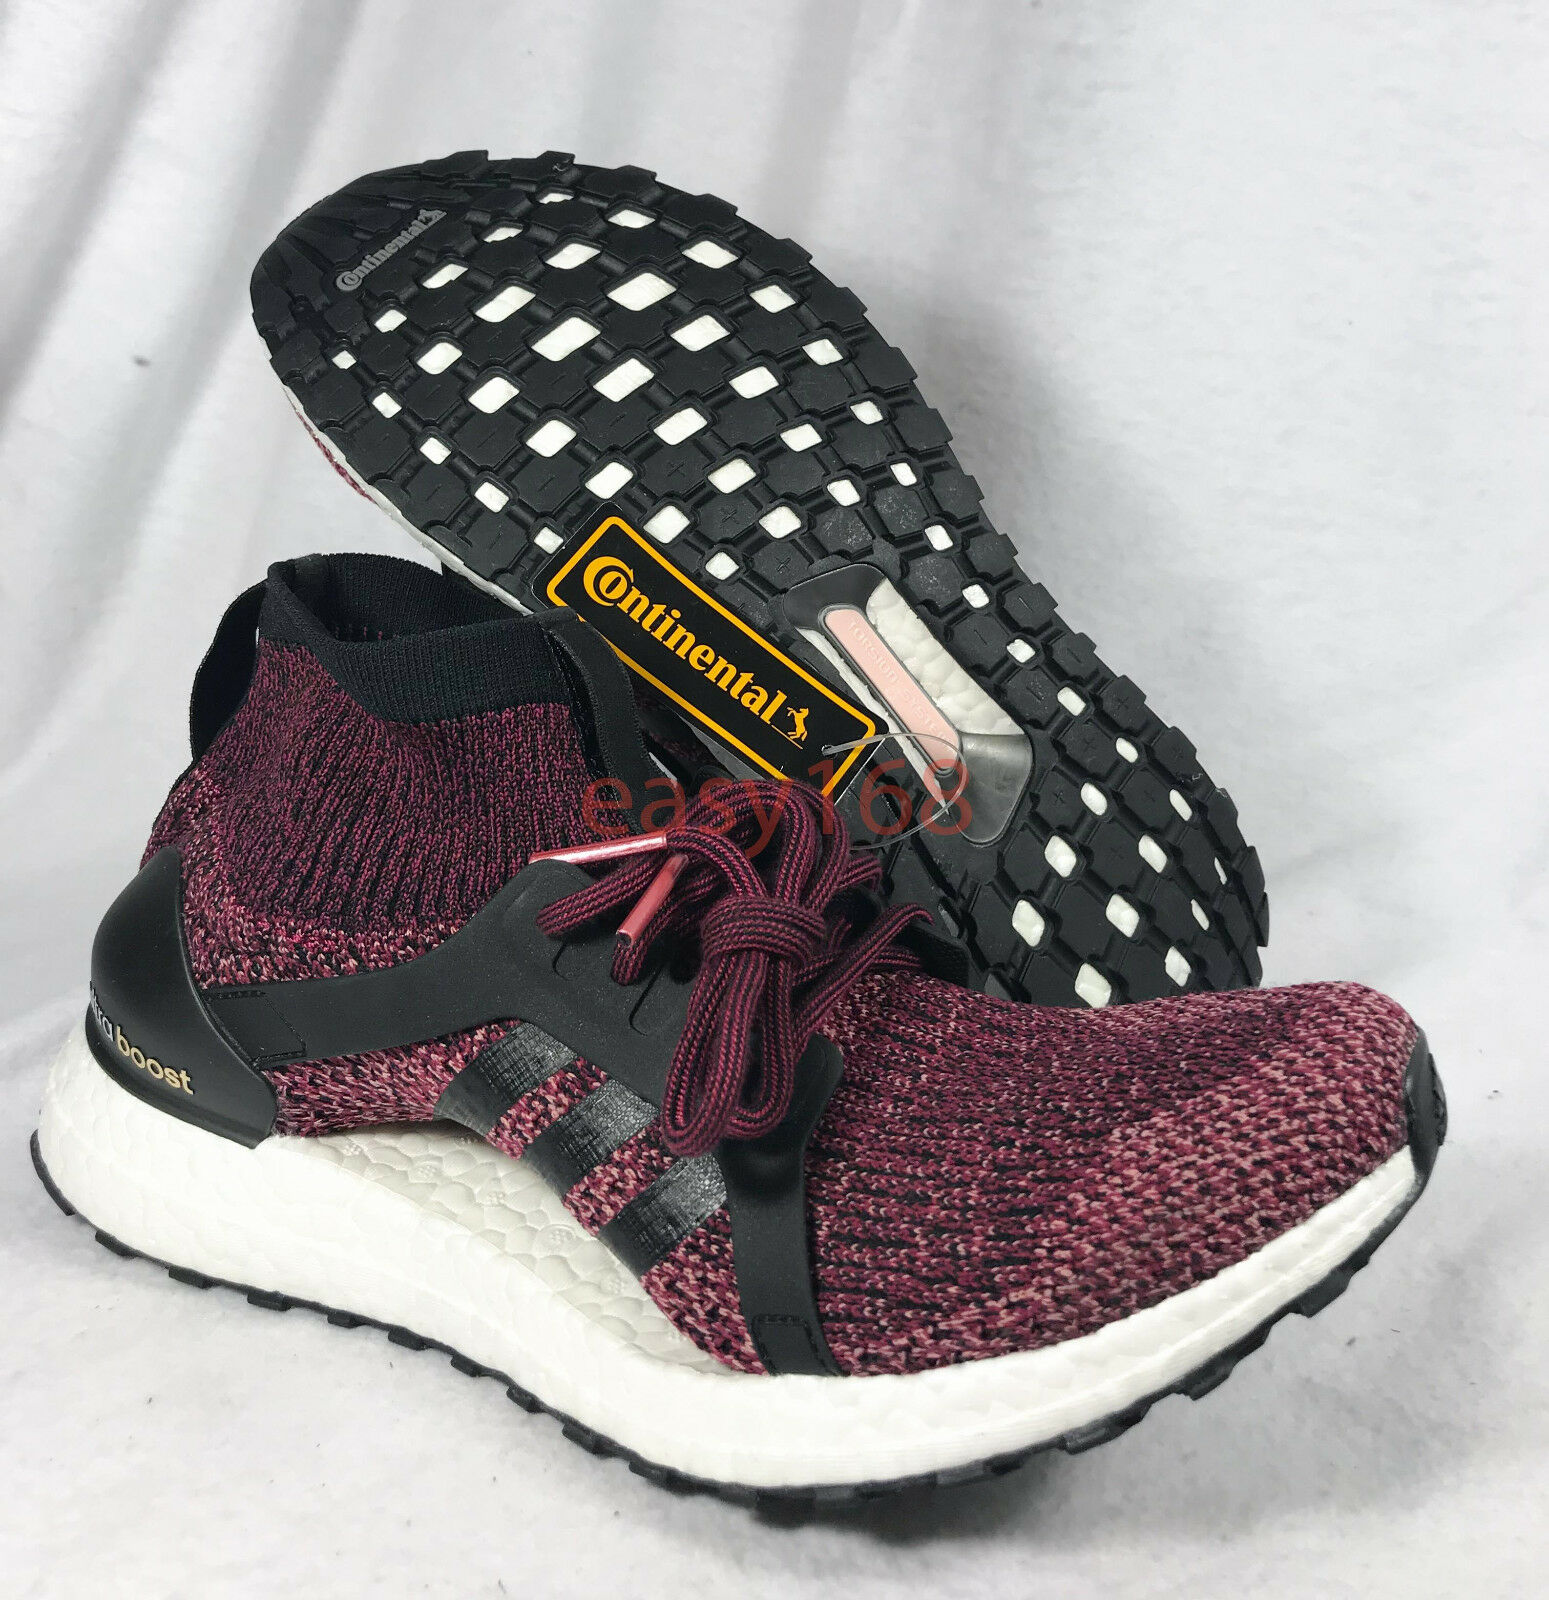 New Adidas Ultraboot x All Terrain Sz 9 WMNS shoes BY1678 Boost  220 NMD Running